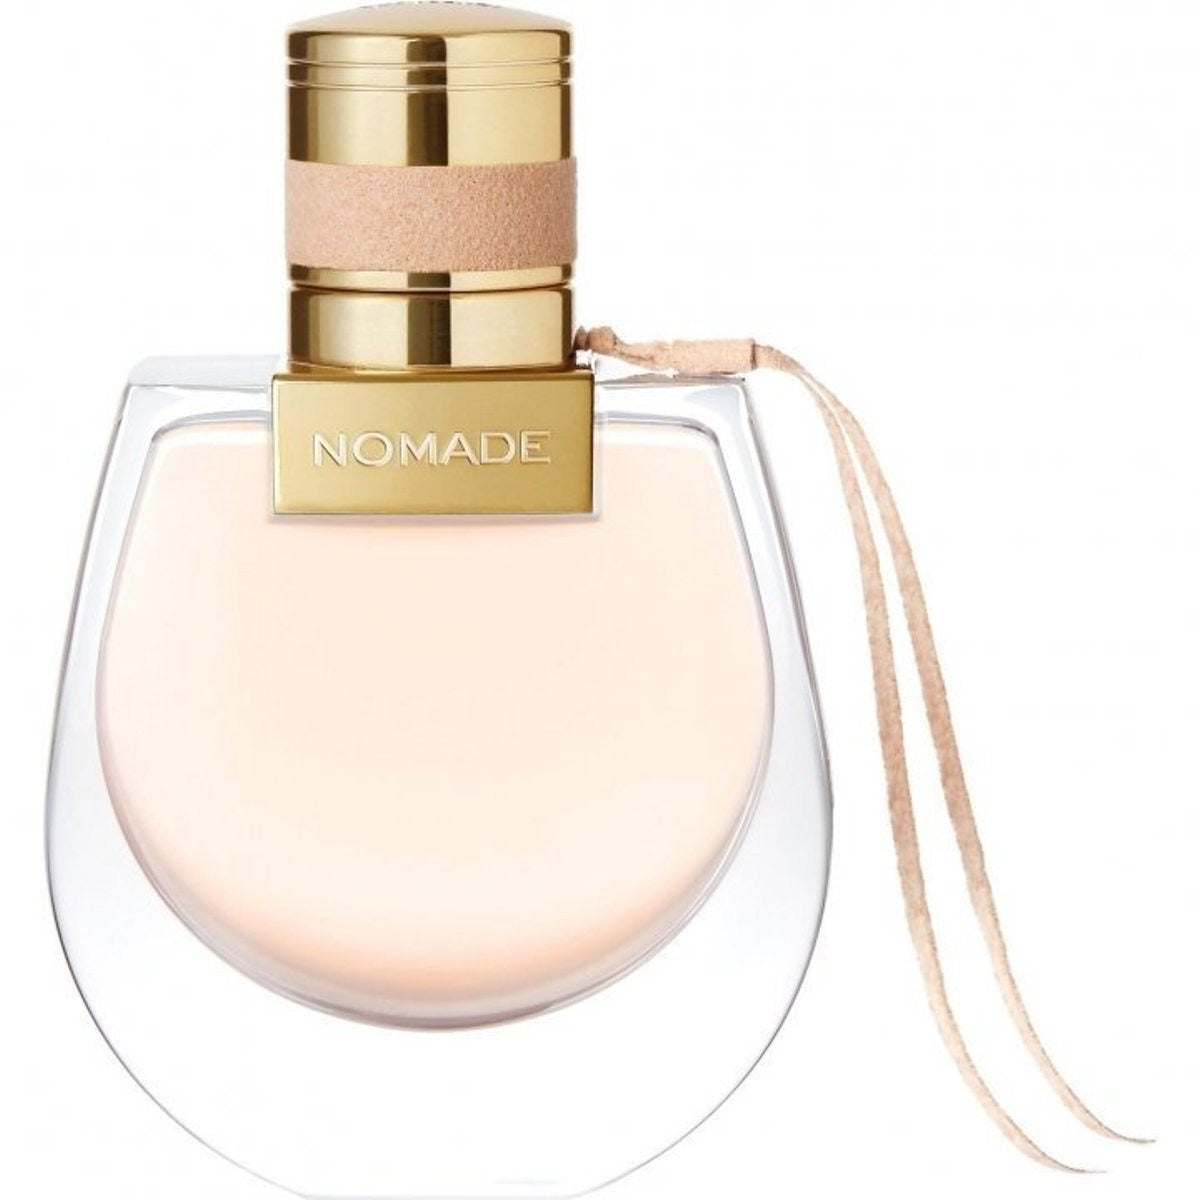 Nomade by Chloe perfume for her EDP 2.5 oz New Tester